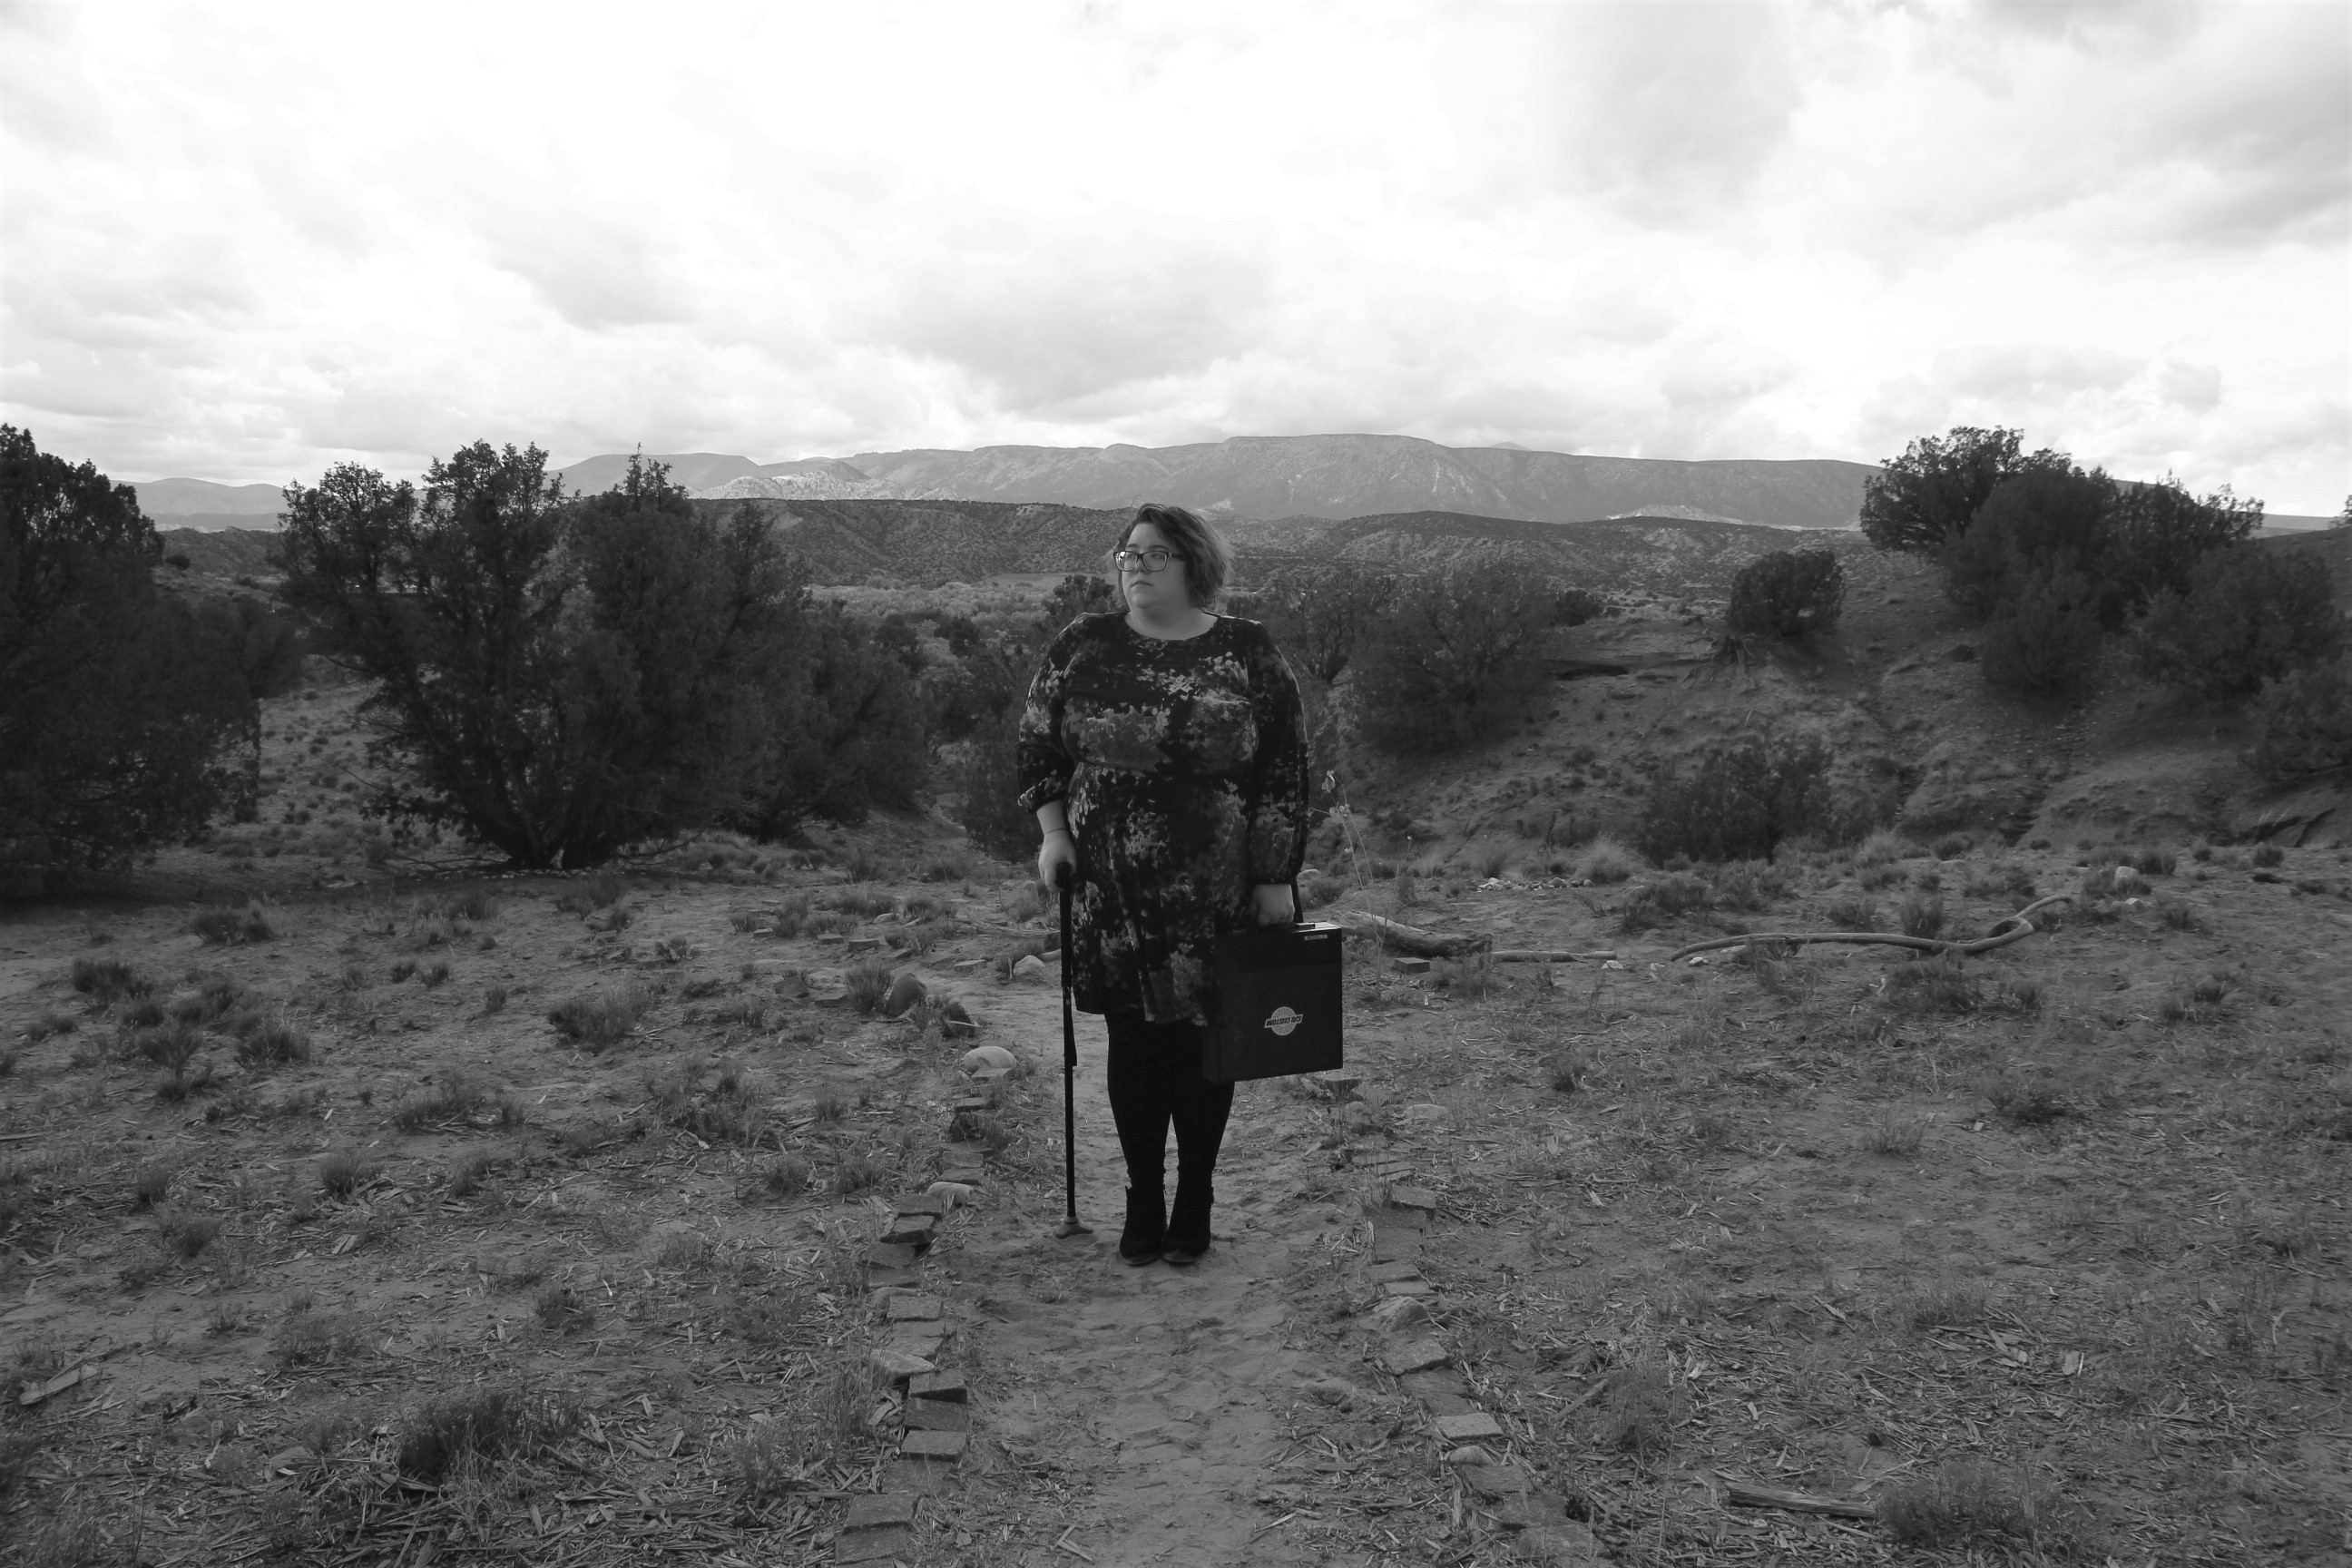 Alexandra stands with her black cane and a typewriter in the New Mexico desert with vistas behind her. The image is desaturated - not quite black and white, but mostly devoid of color.